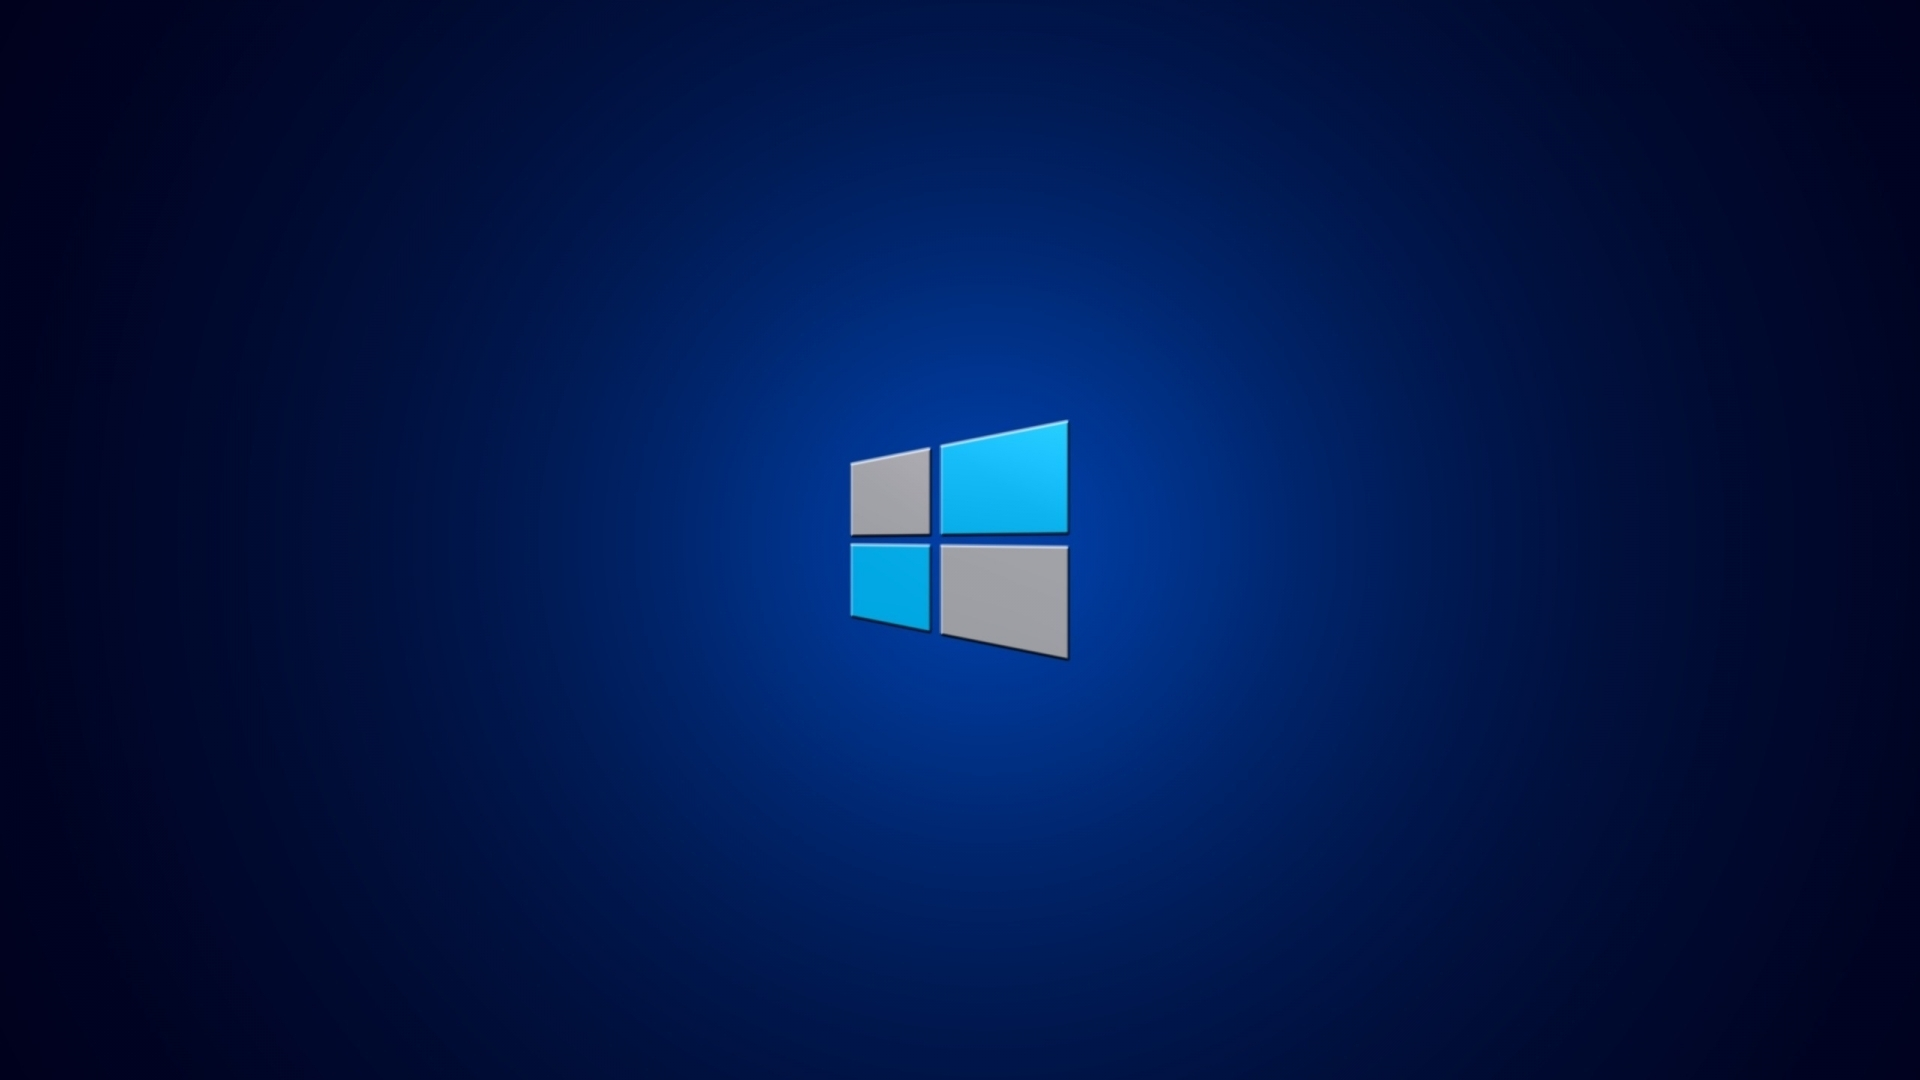 windows 8.1 wallpapers for free download, 47 windows 8.1 full hd